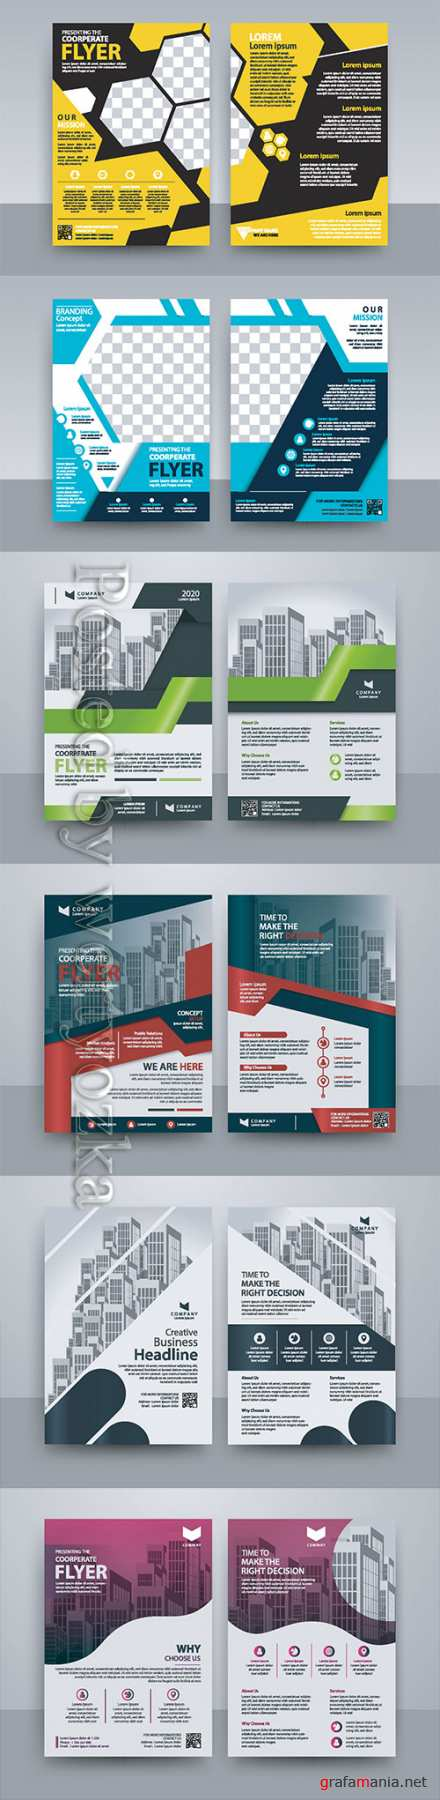 Business vector template for brochure, annual report, magazine